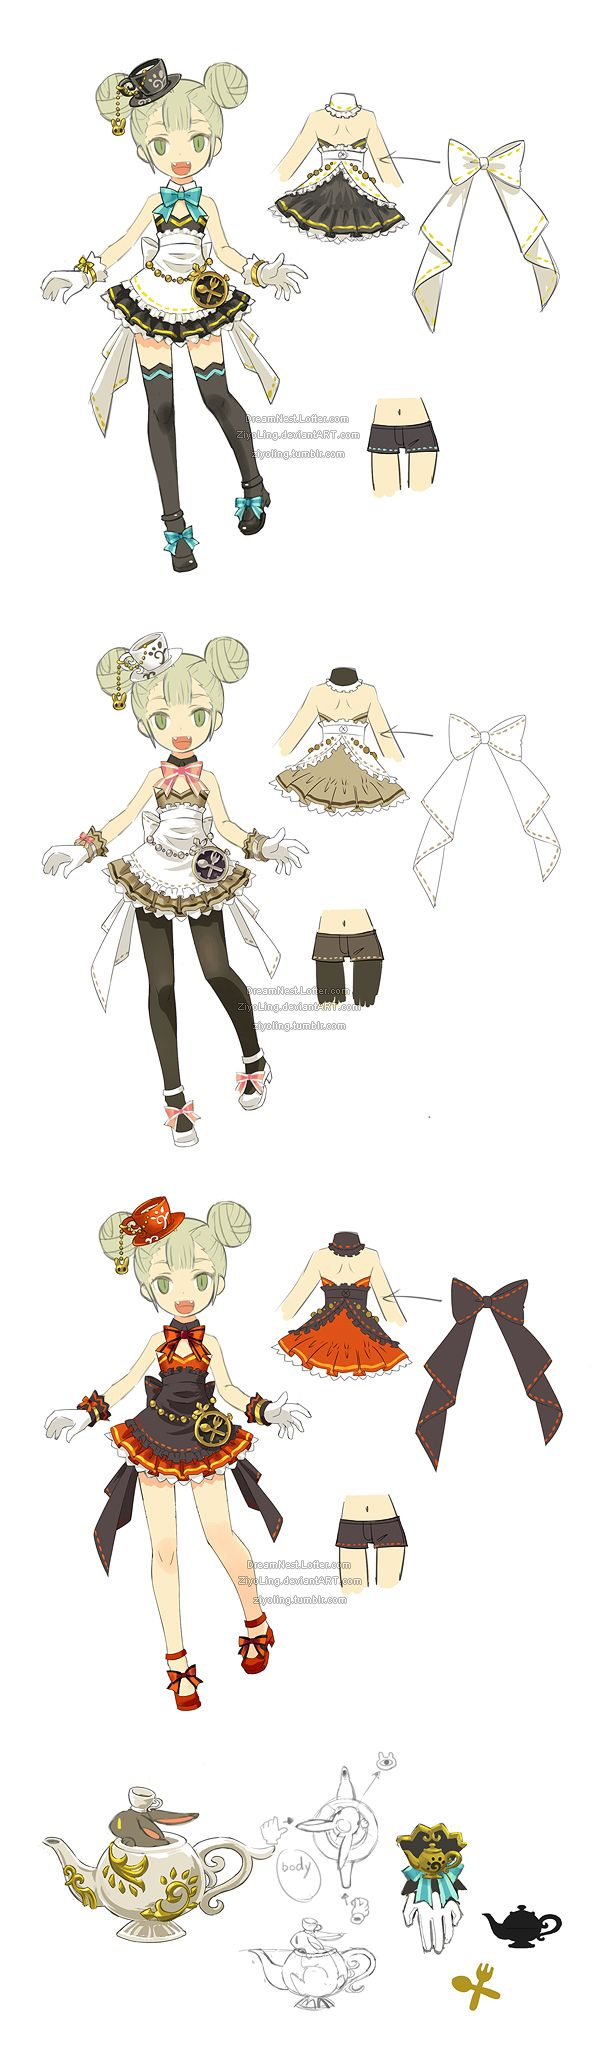 Google themes dragon nest - Costume Weapon Designs Of A Restaurant Theme For Dragon Nest Academic In The Other Classes Of Dragonnest Restaurant Costume Academic